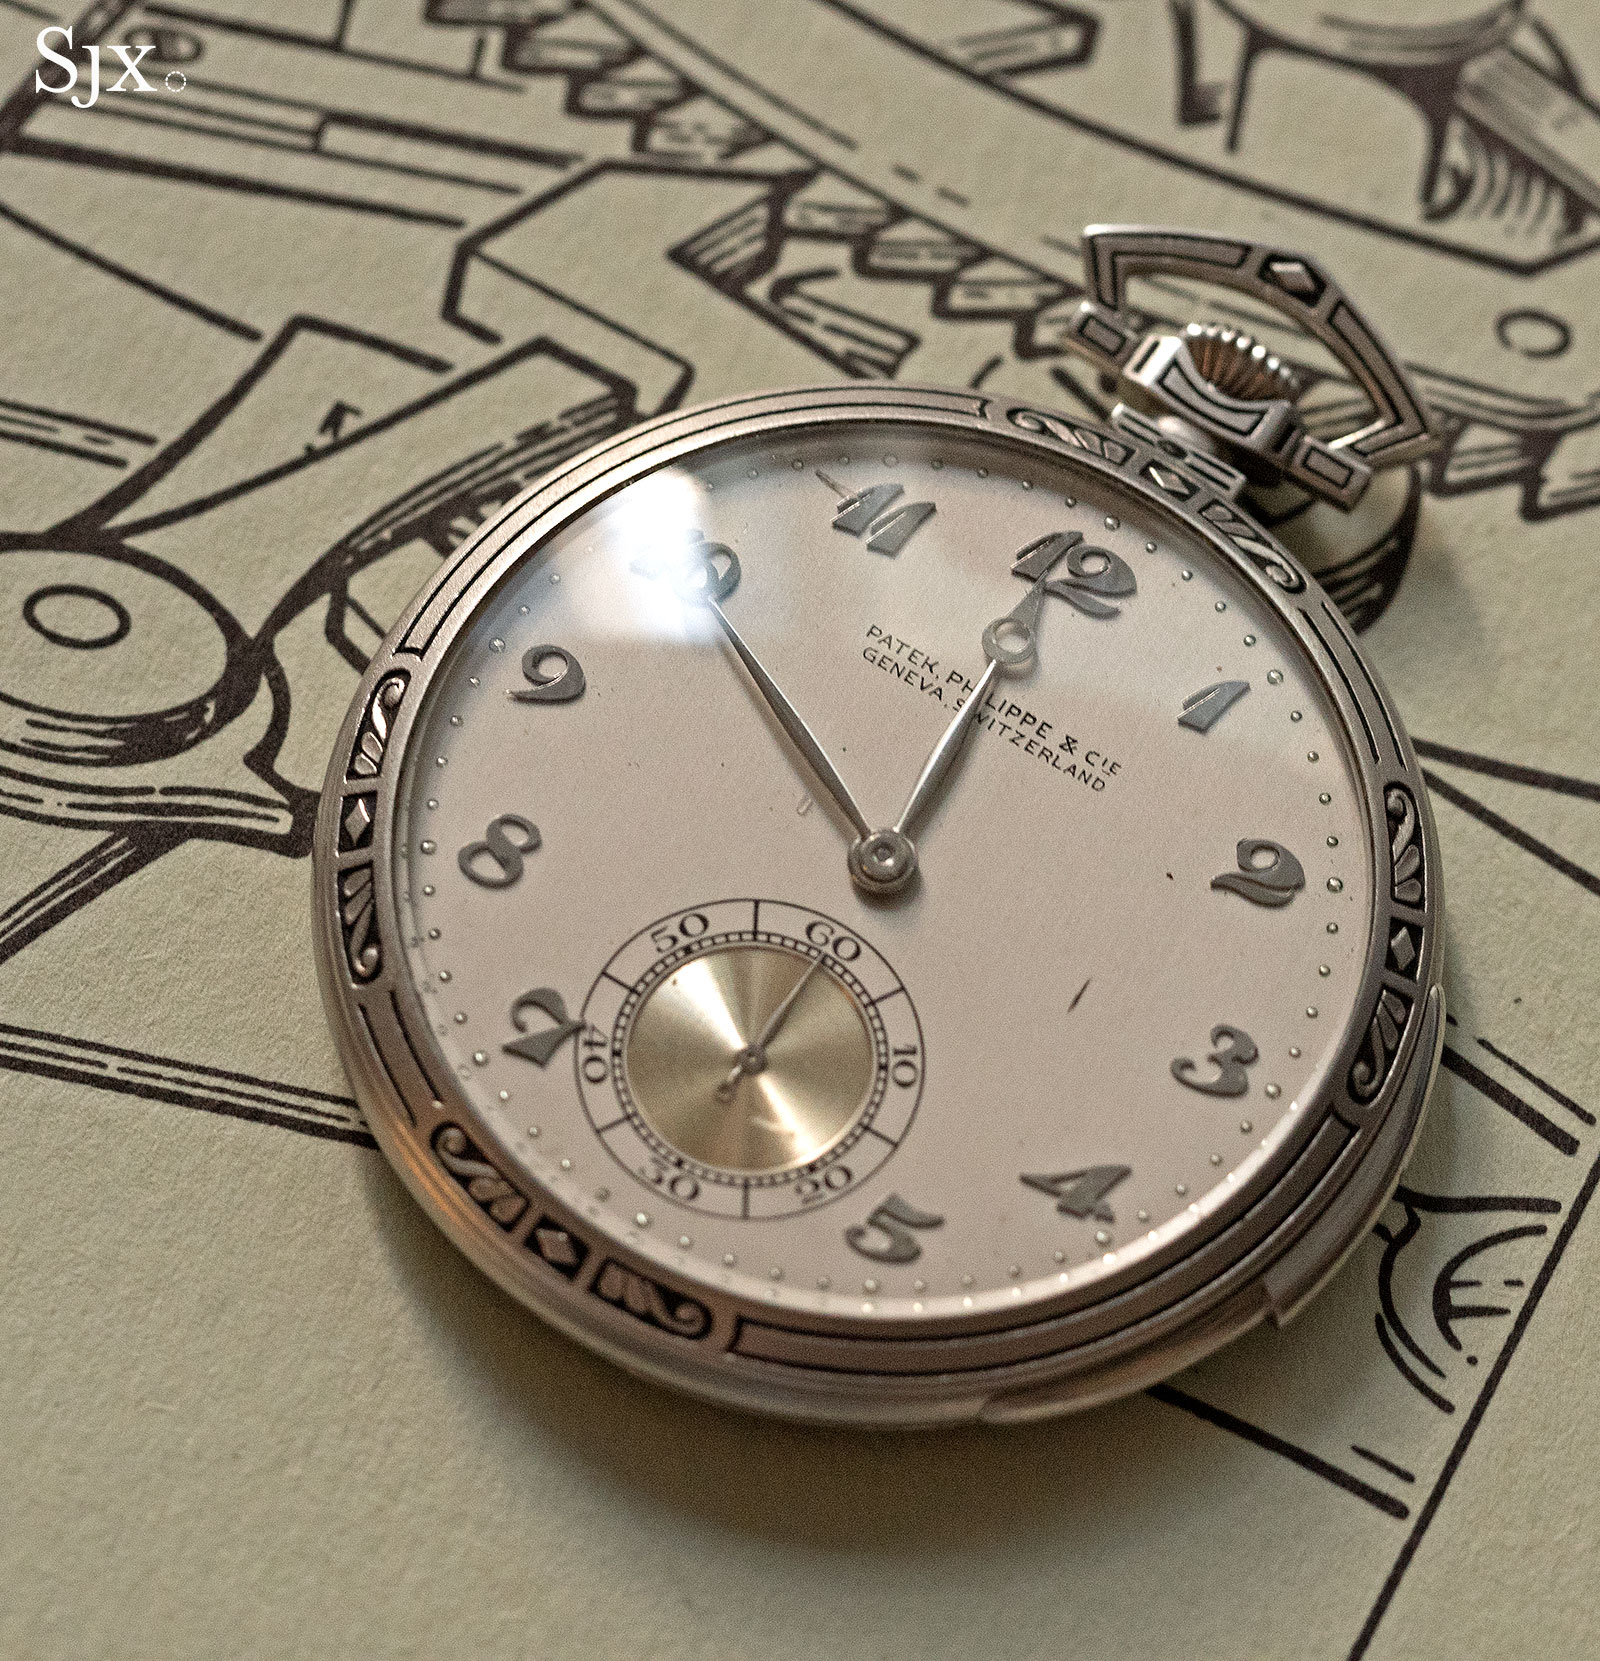 Phillips HKWA3 Patek Philippe minute repeater pocket watch 1